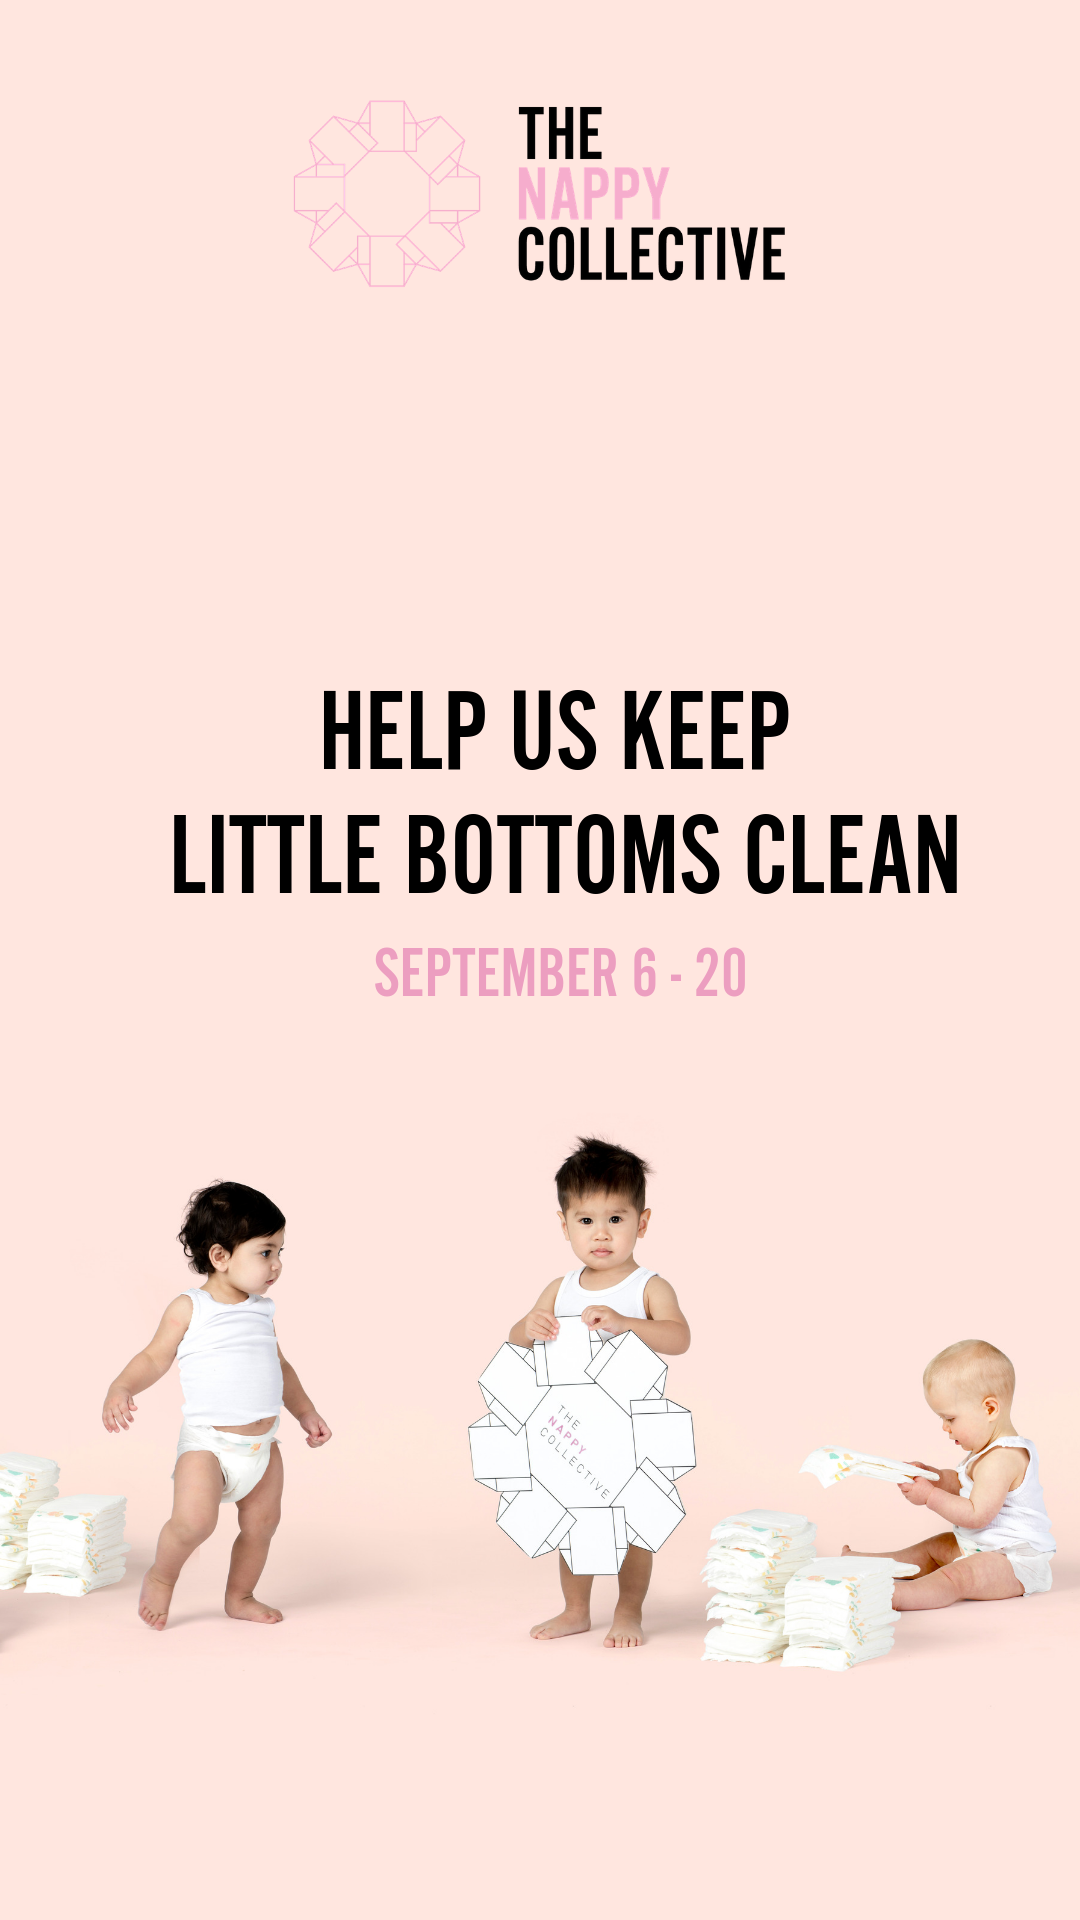 help us keep little bottoms clean Insta Story.png